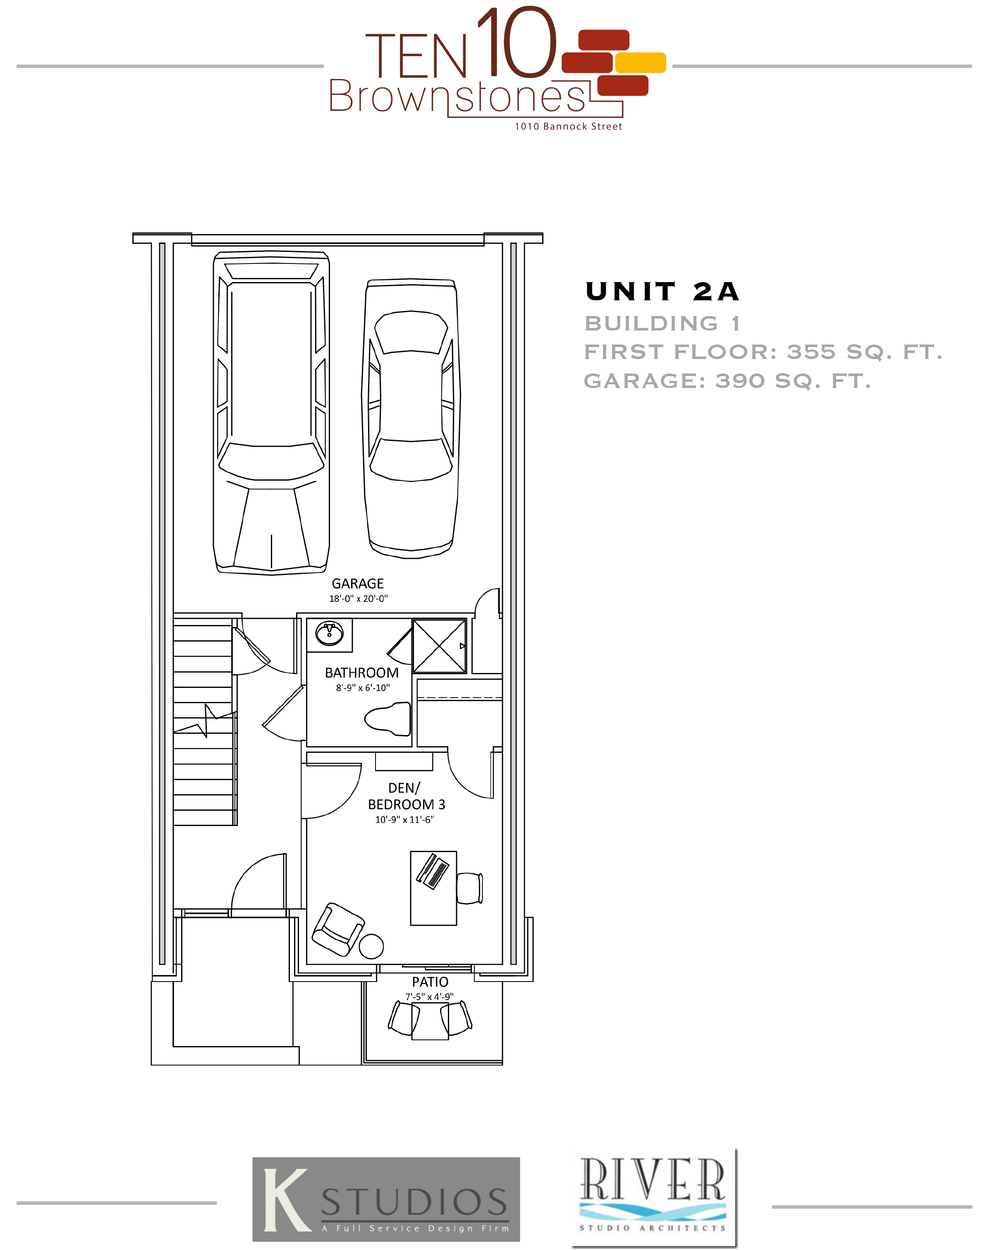 Click to view & download Unit 2Afloor plan